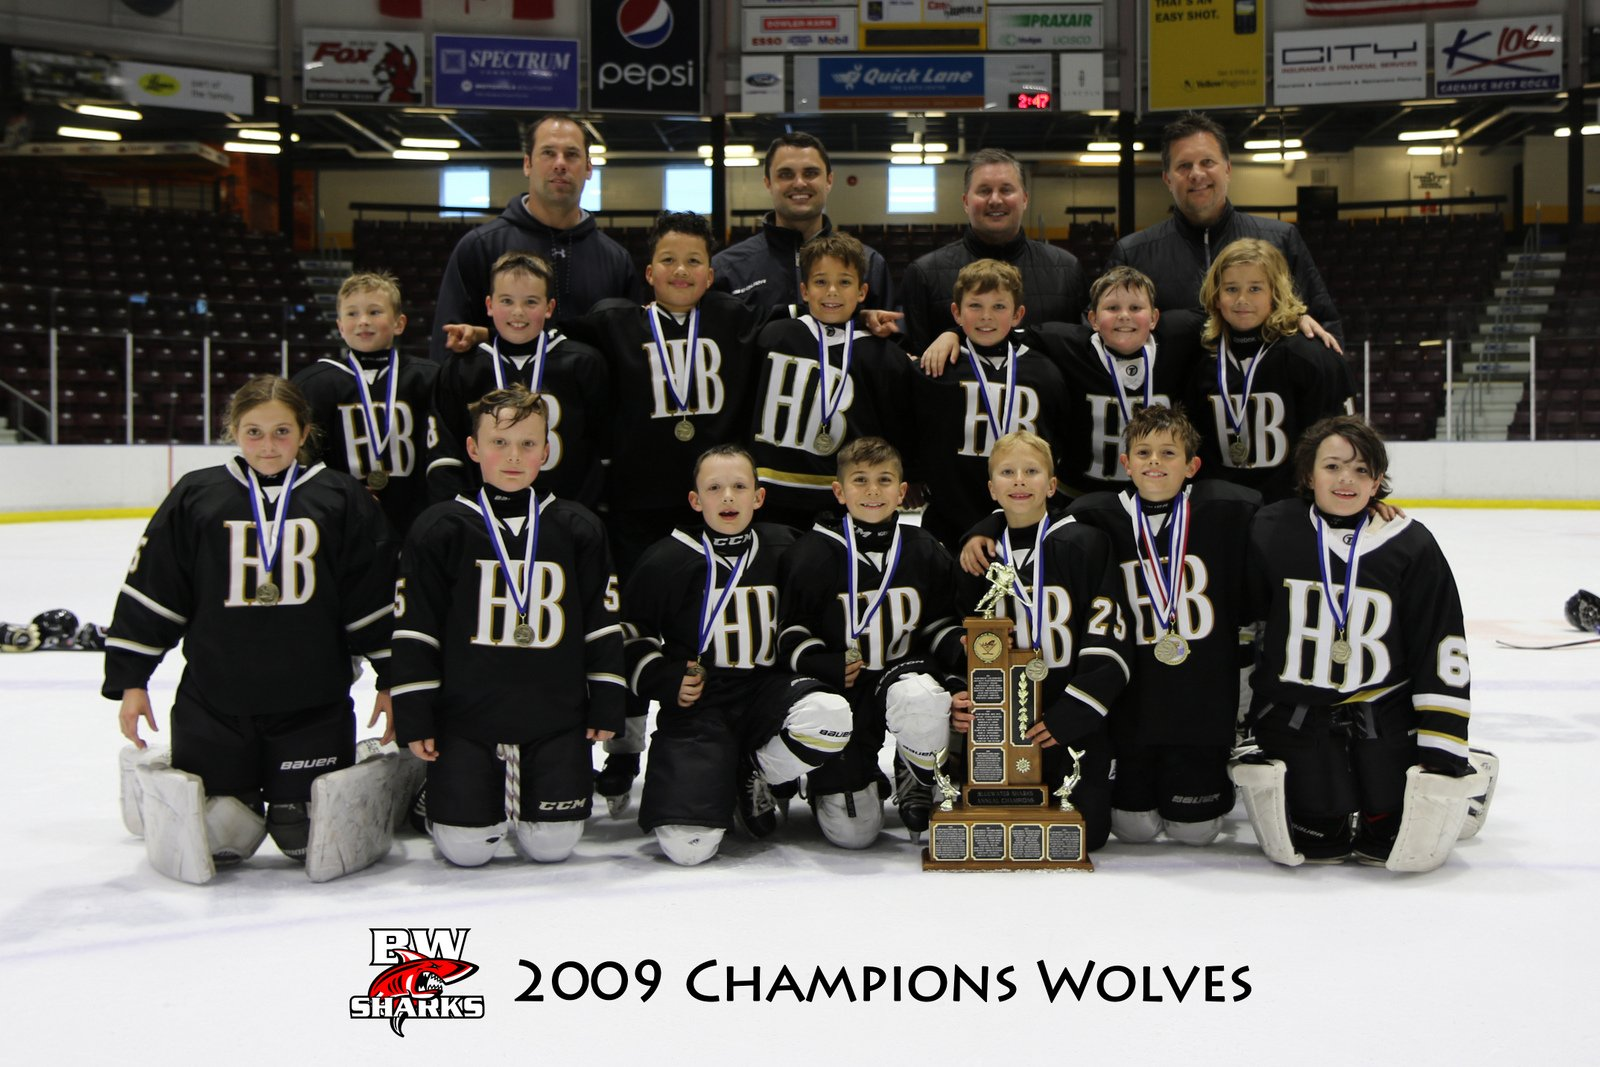 2009-Champions-Wolves-SilverPeak-Studios-Canada-Sarnia-Bluewater-Sharks-Tournament-001